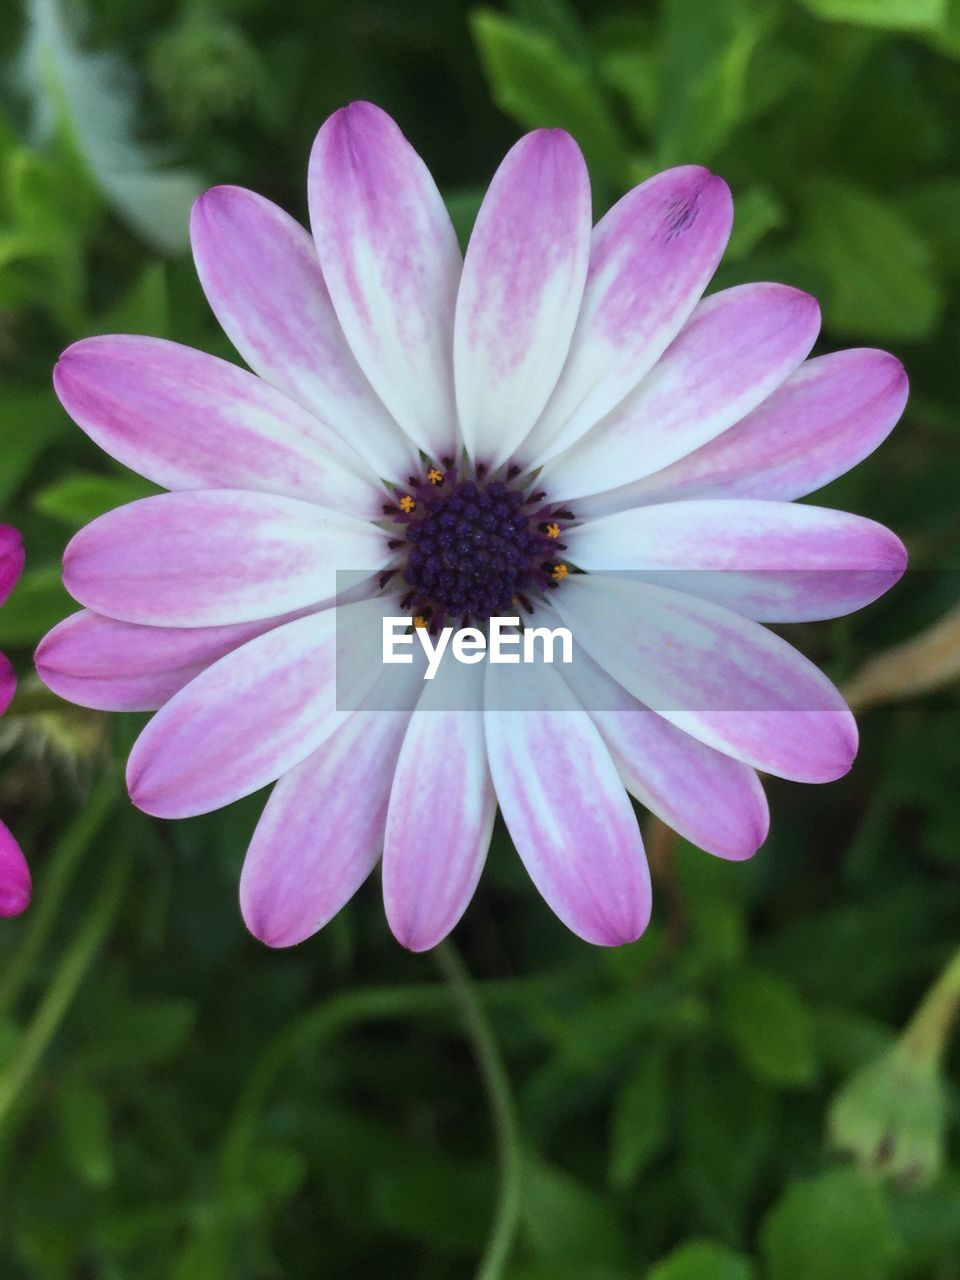 flower, petal, nature, fragility, beauty in nature, freshness, plant, flower head, outdoors, no people, day, growth, focus on foreground, blooming, pink color, close-up, osteospermum